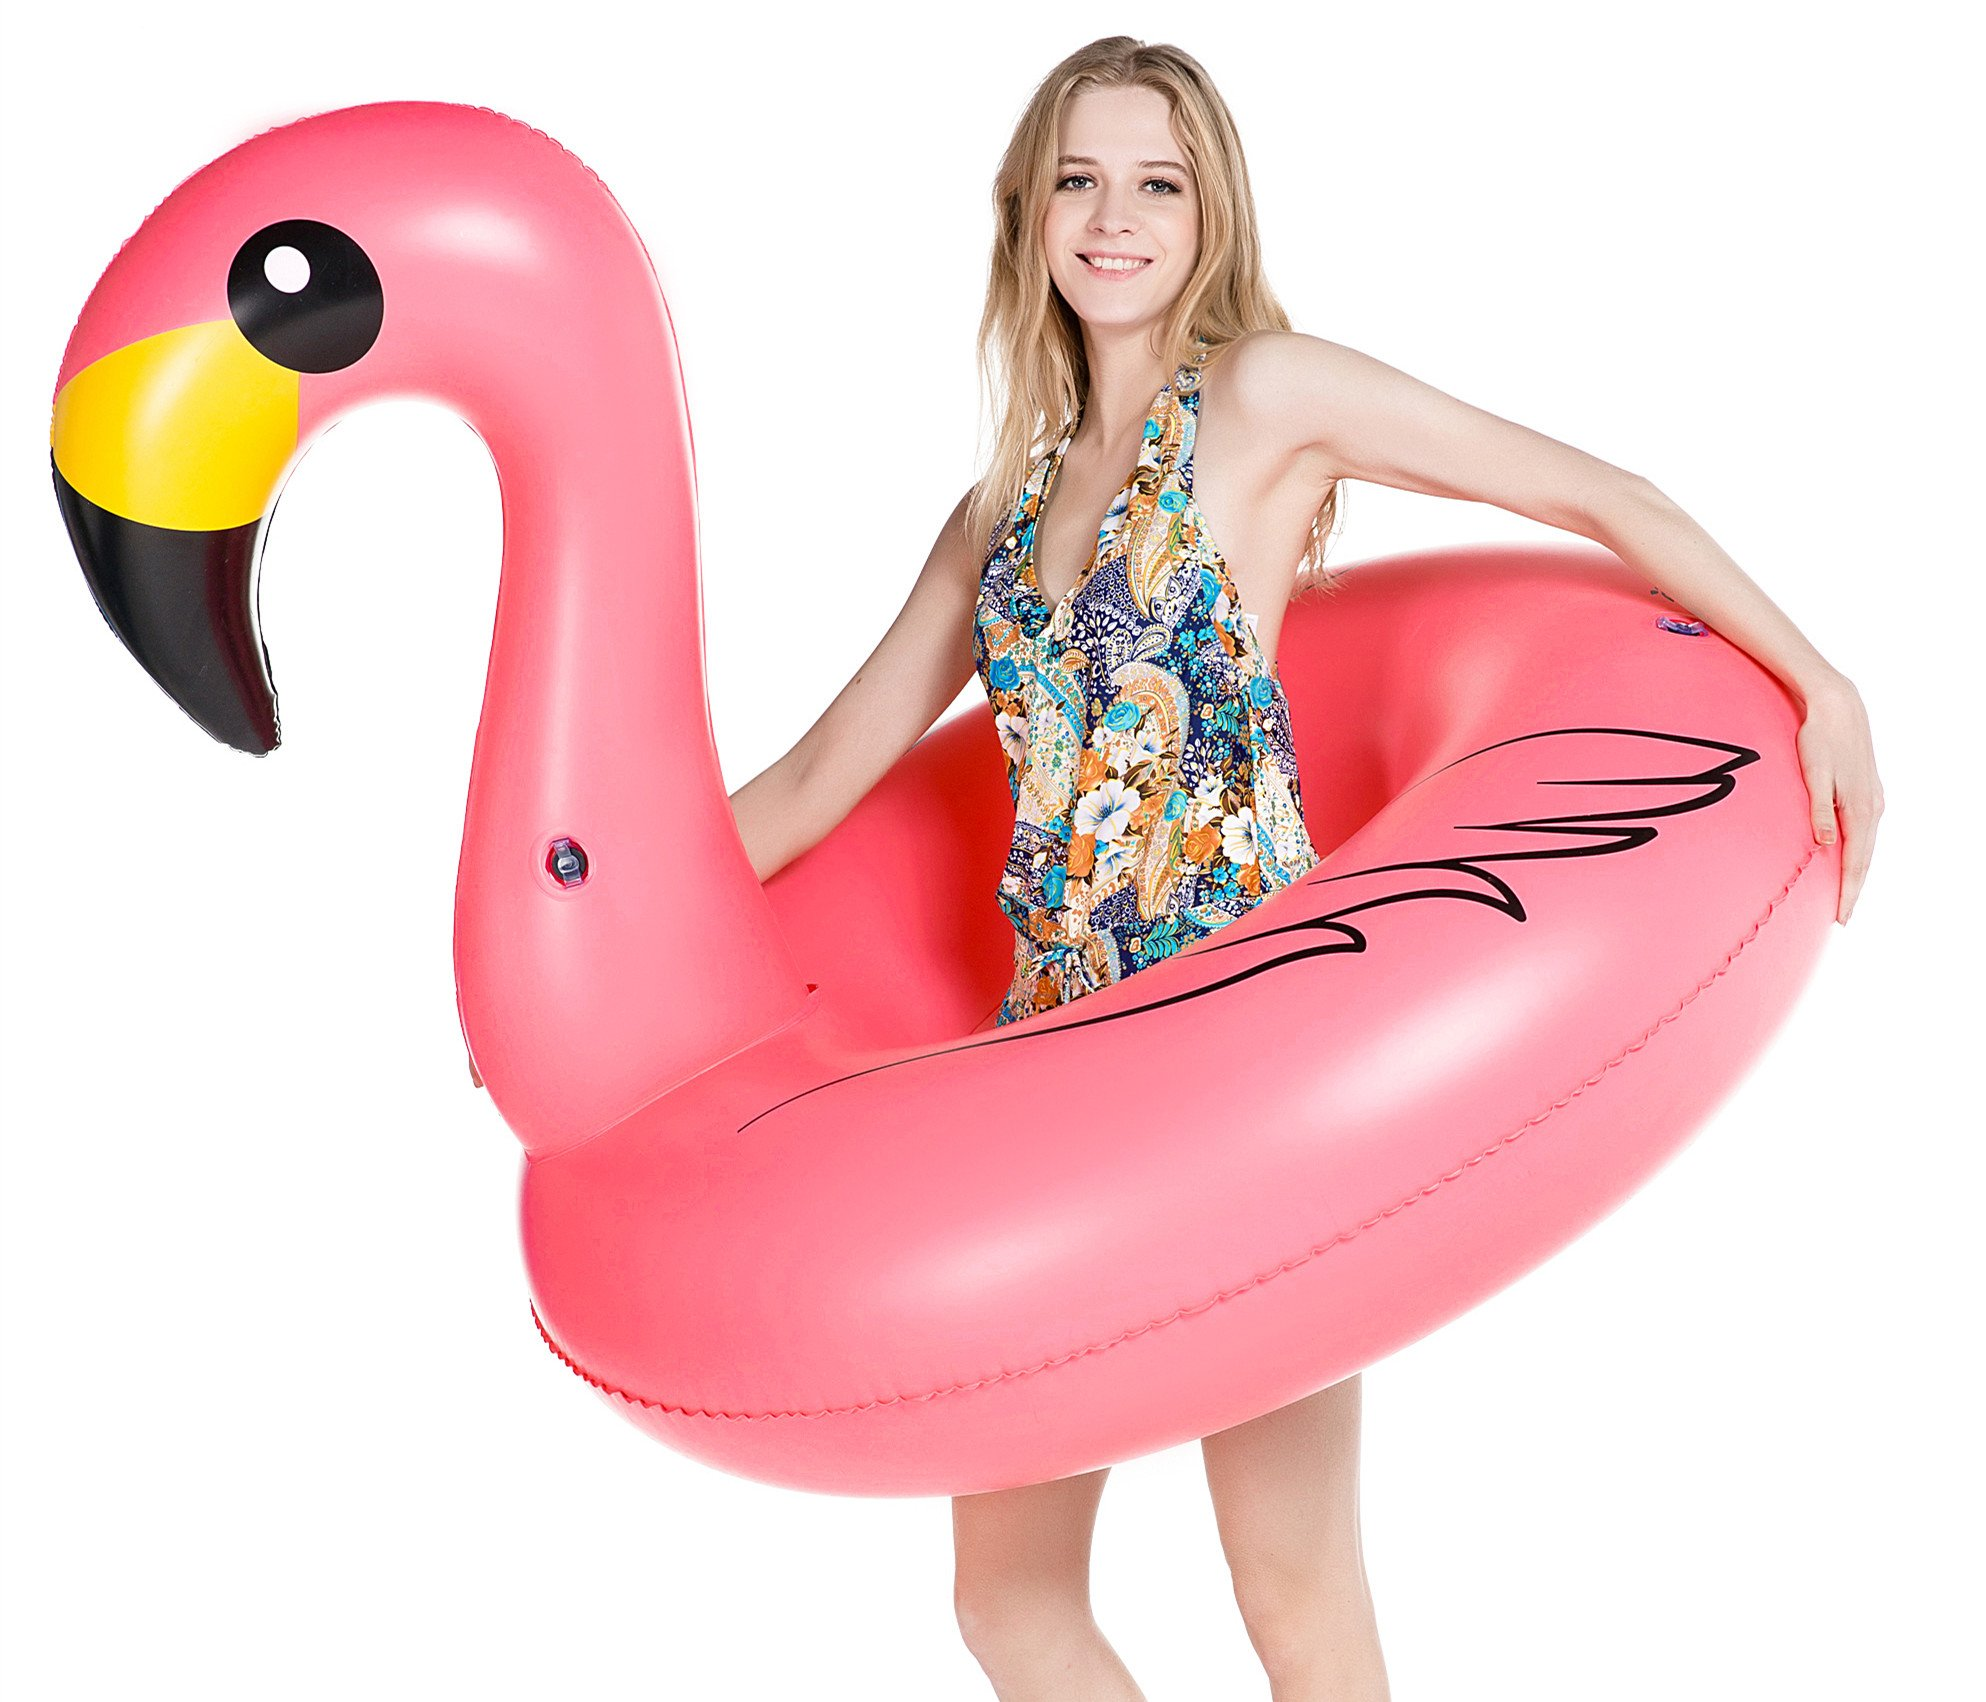 Jasonwell Giant Inflatable Flamingo Pool Float Party Tube Rapid Valves Summer Beach Swimming Pool Lounge Raft Decorations Toys Adults & Kids